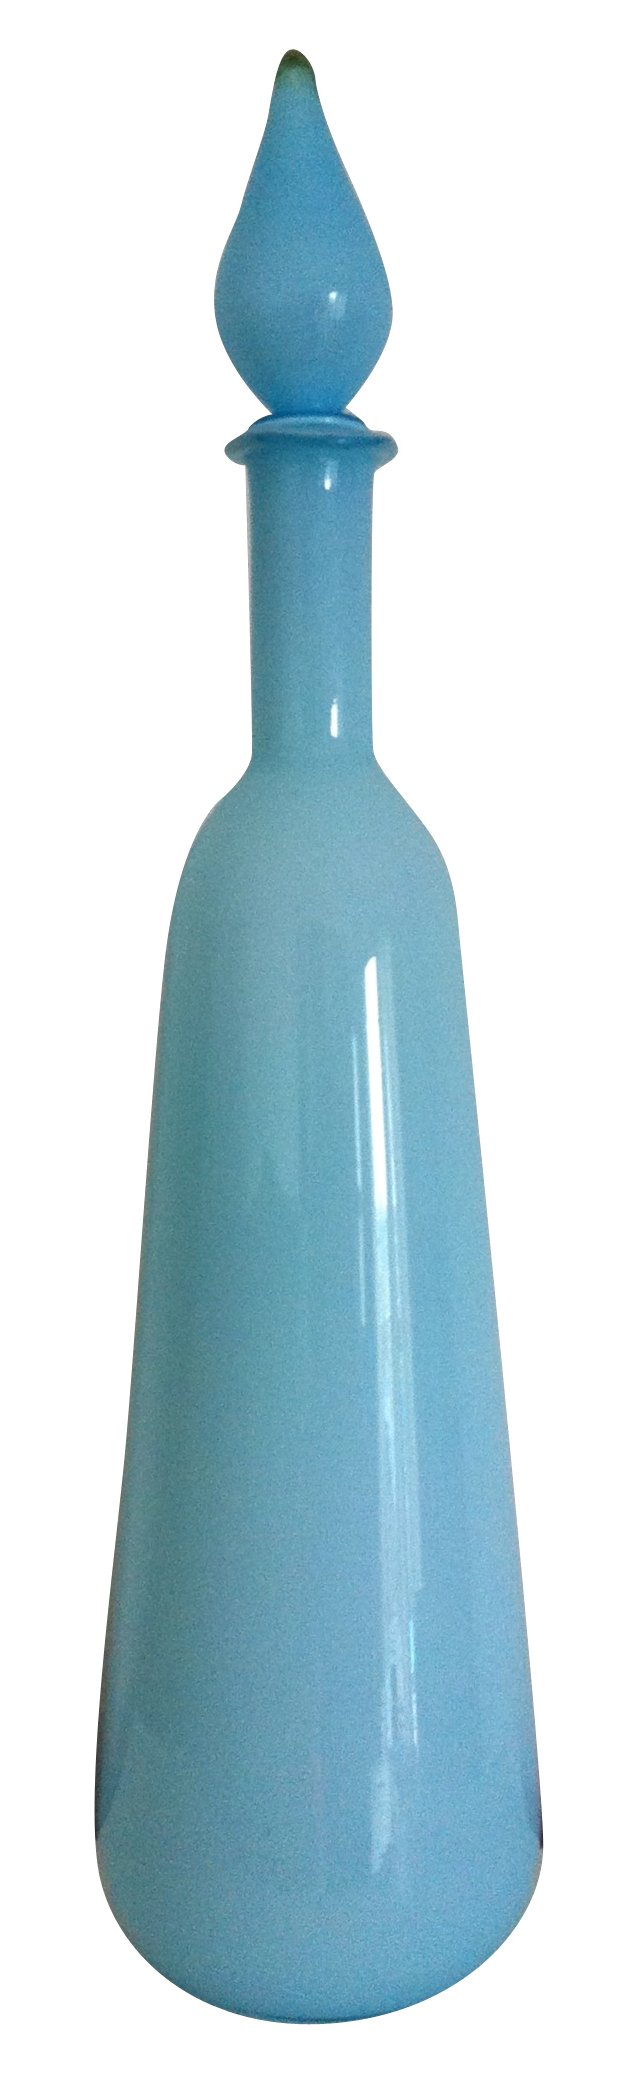 Sky Blue Toscany Rounded Decanter